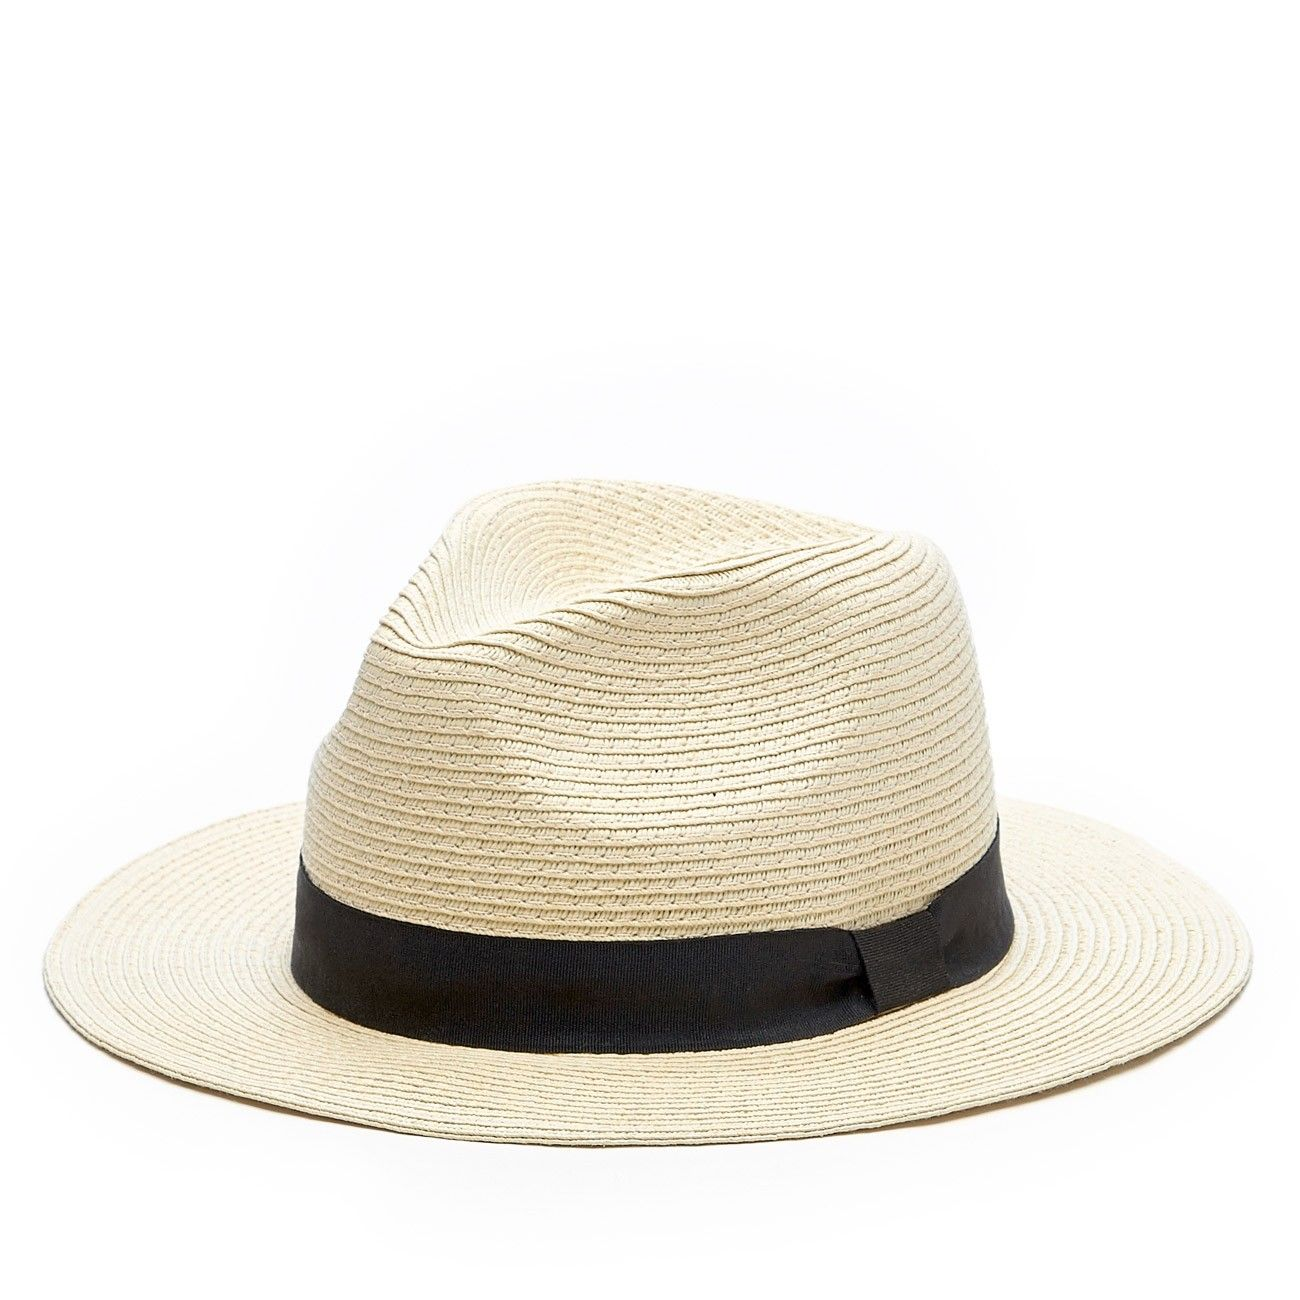 Sole Society Straw Panama Hat   Sole Society Shoes, Bags and Accessories